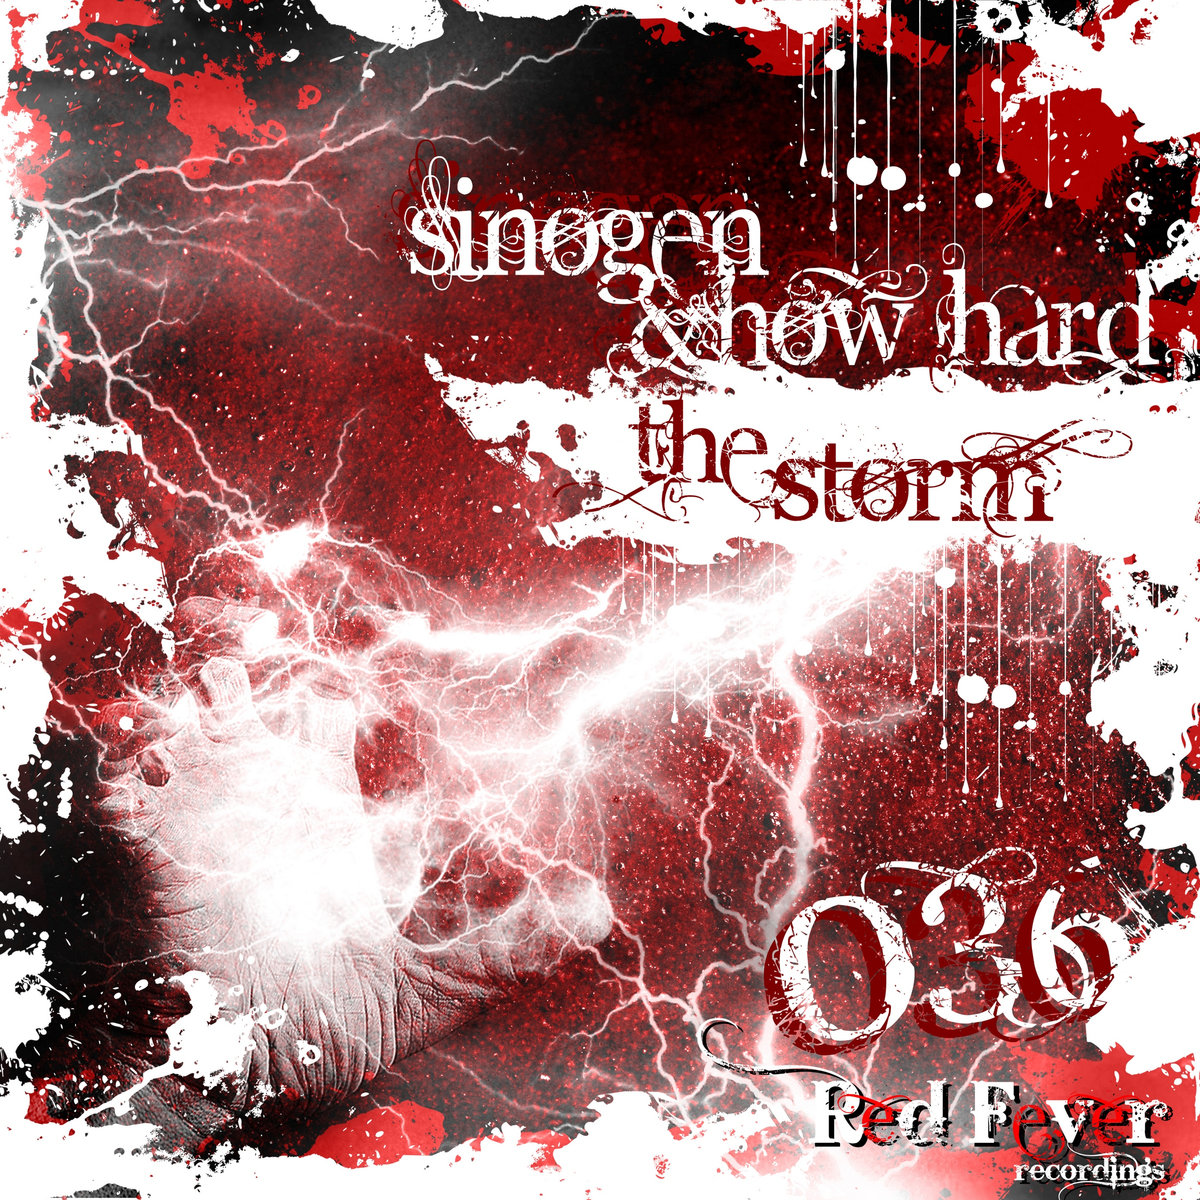 Sinogen & How Hard - Awakening @ 'The Storm' album (electronic, demanufacturer)